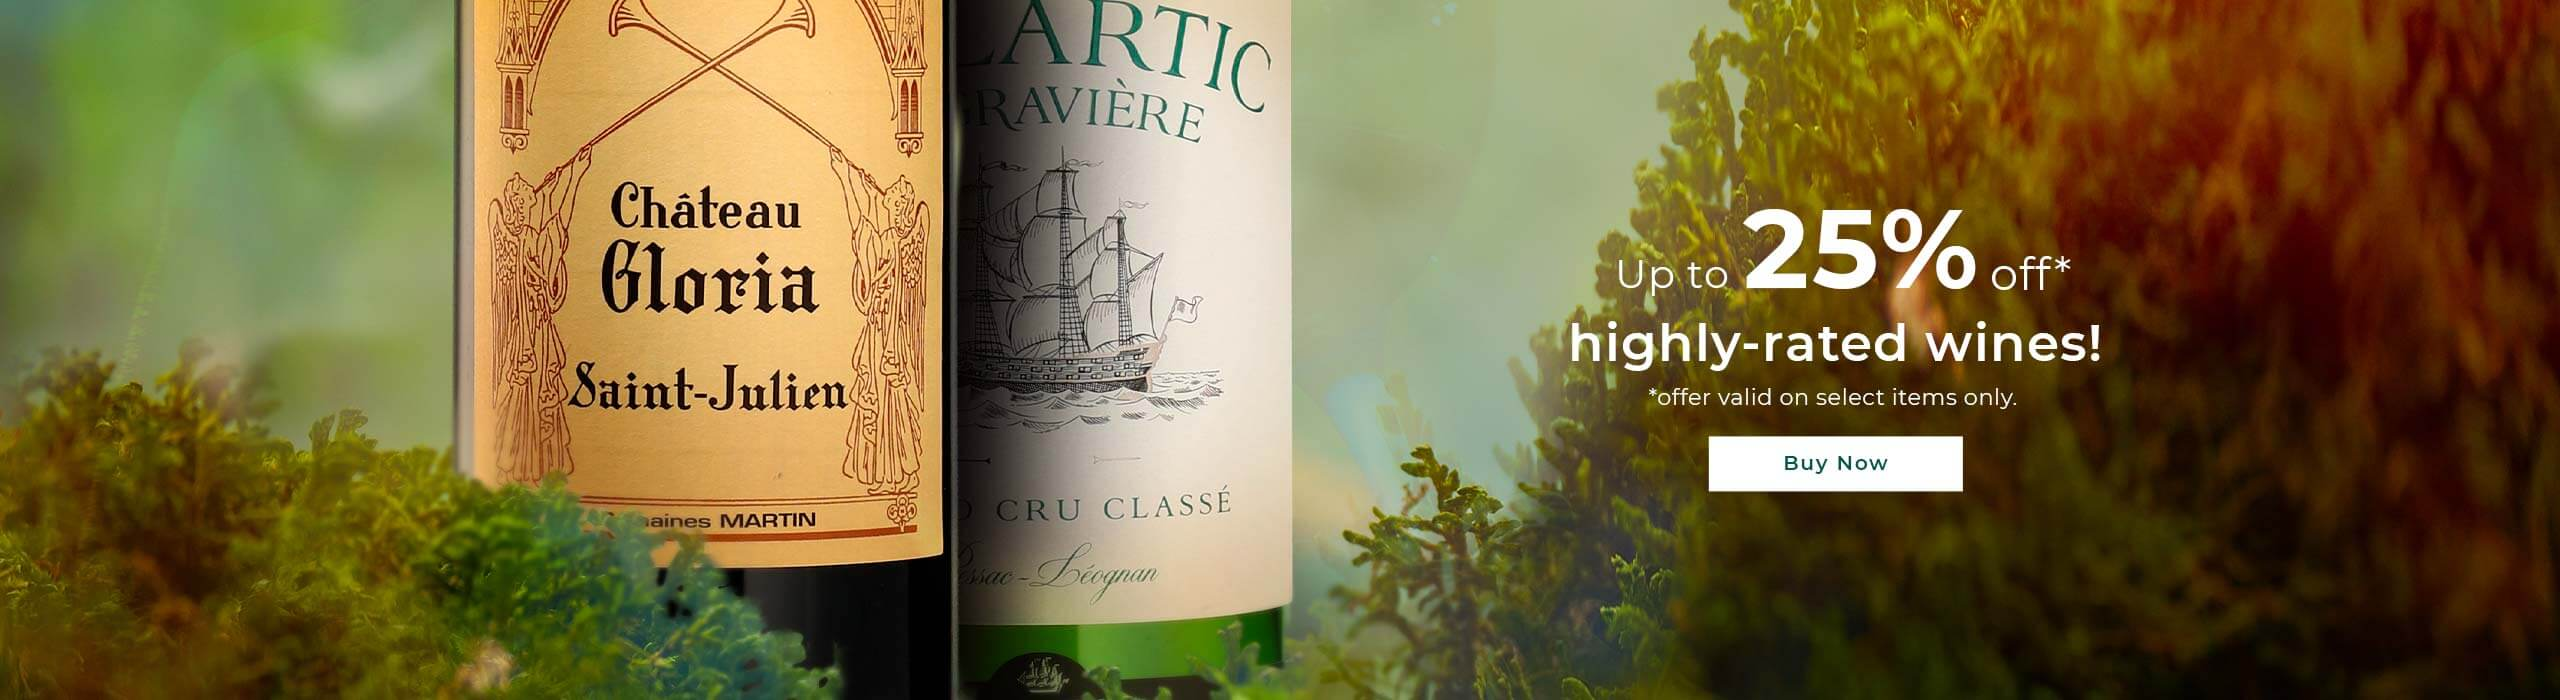 Up to 25% off highly-rated wines!